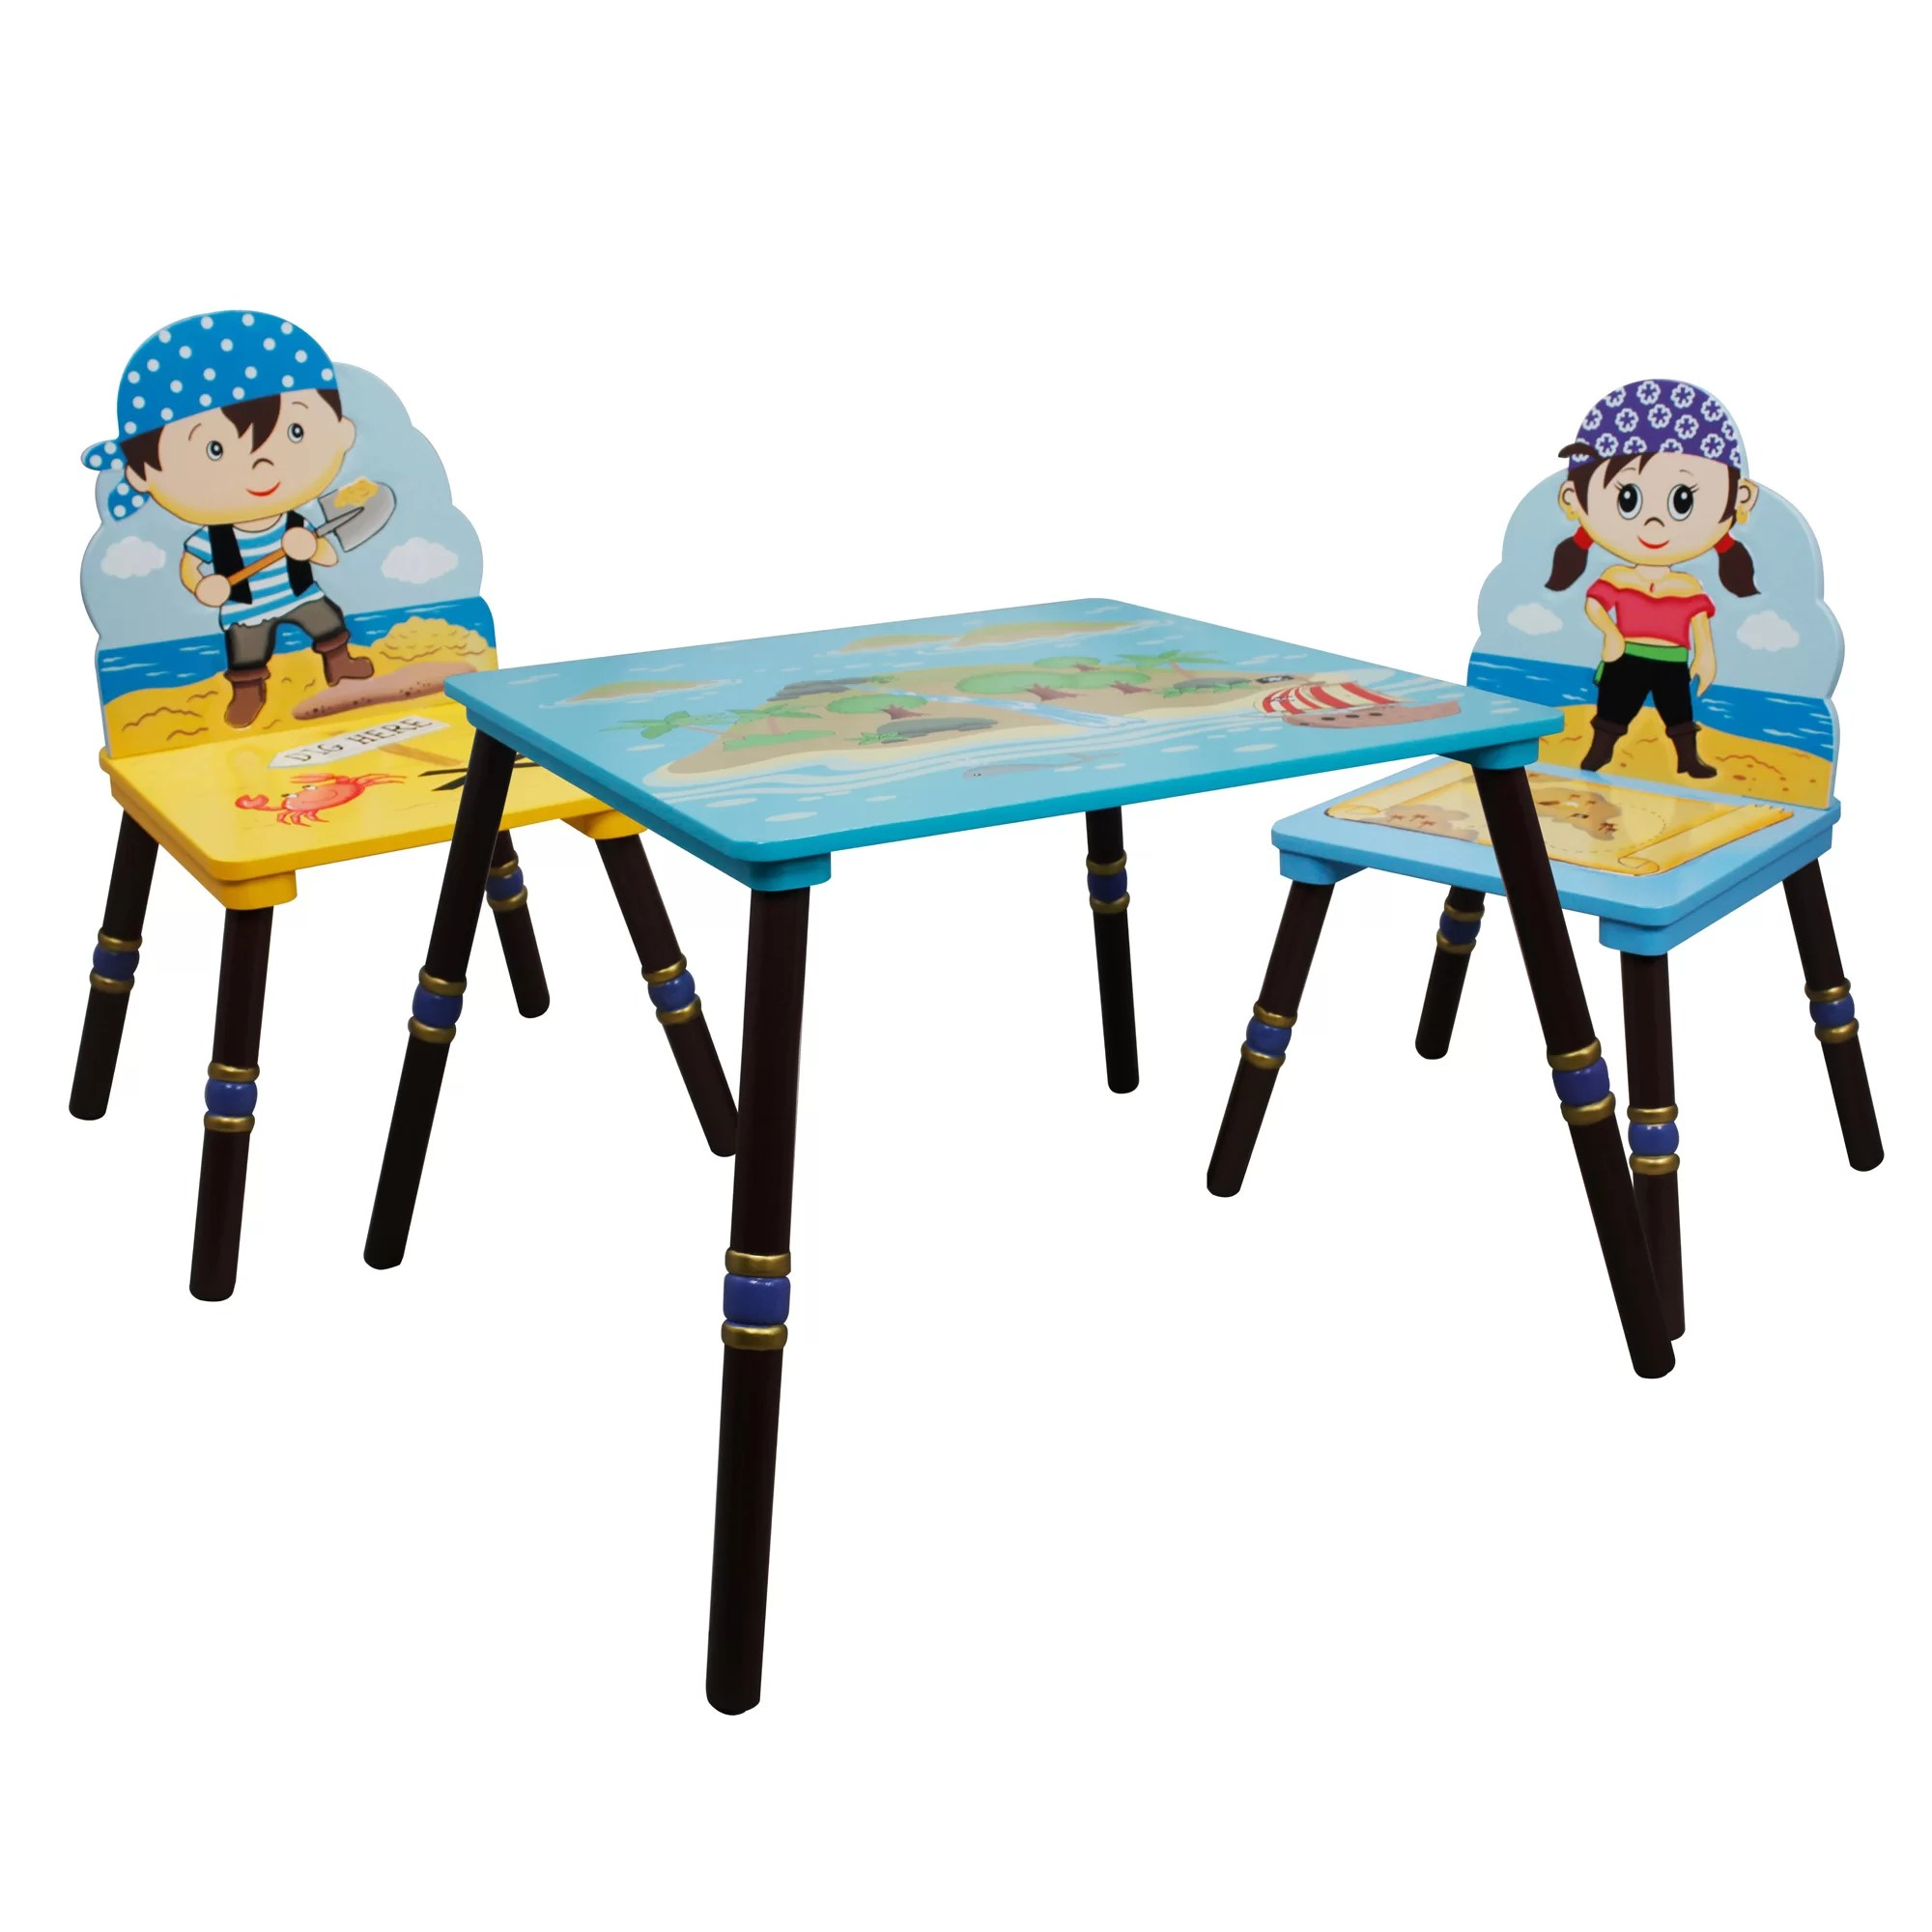 3 piece table and chair set staples chairs fantasy fields kids rectangle